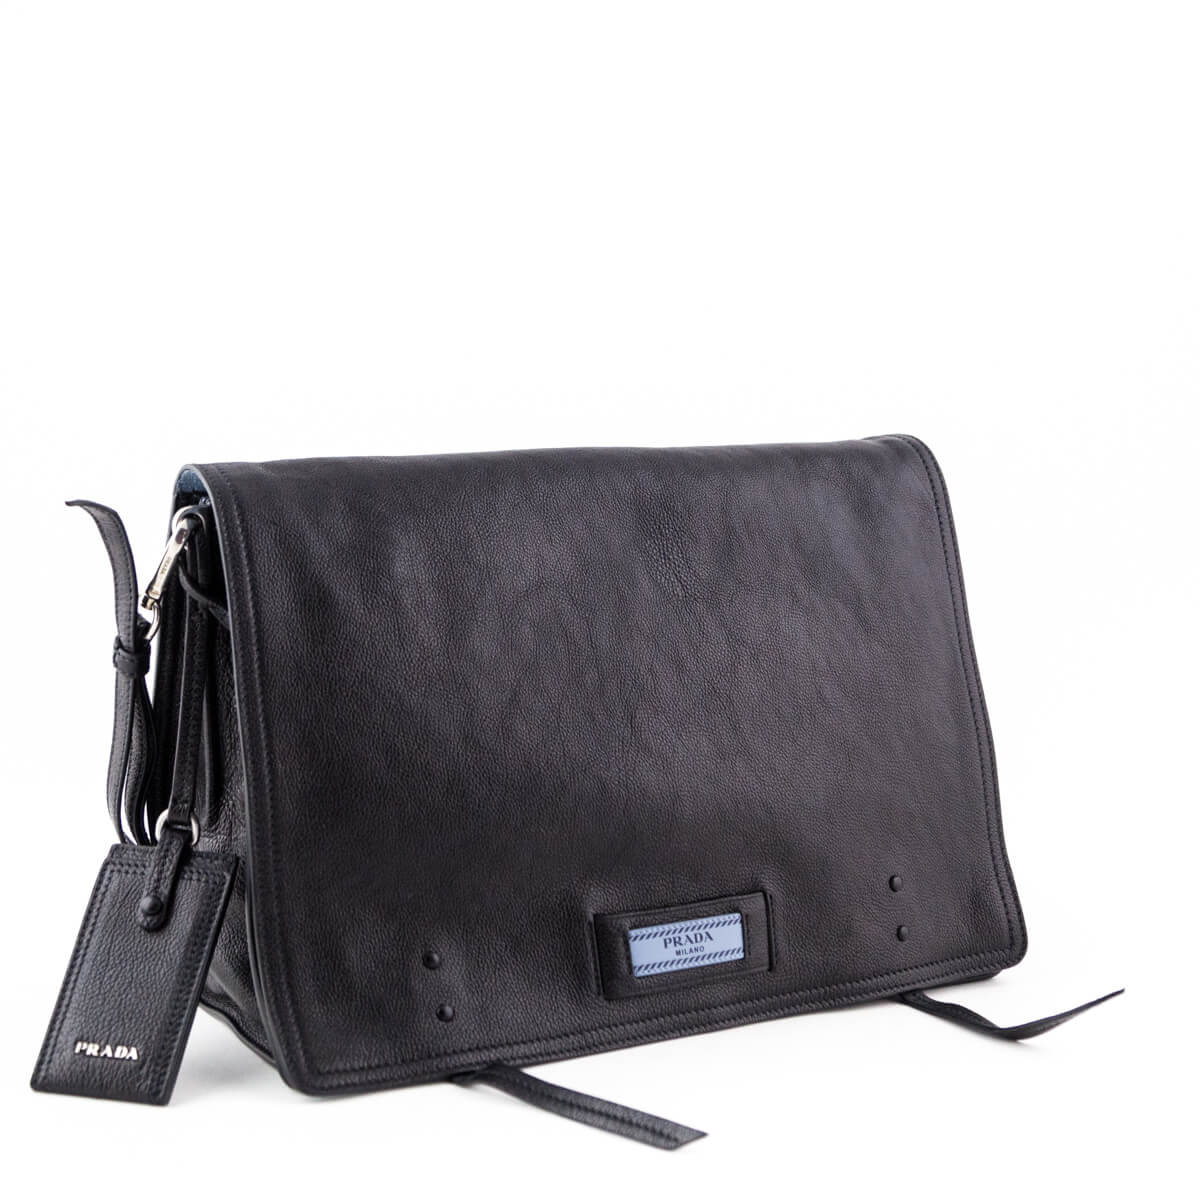 605b5114873889 ... Prada Black Glace Calf Large Etiquette Shoulder Bag - LOVE that BAG -  Preowned Authentic Designer ...